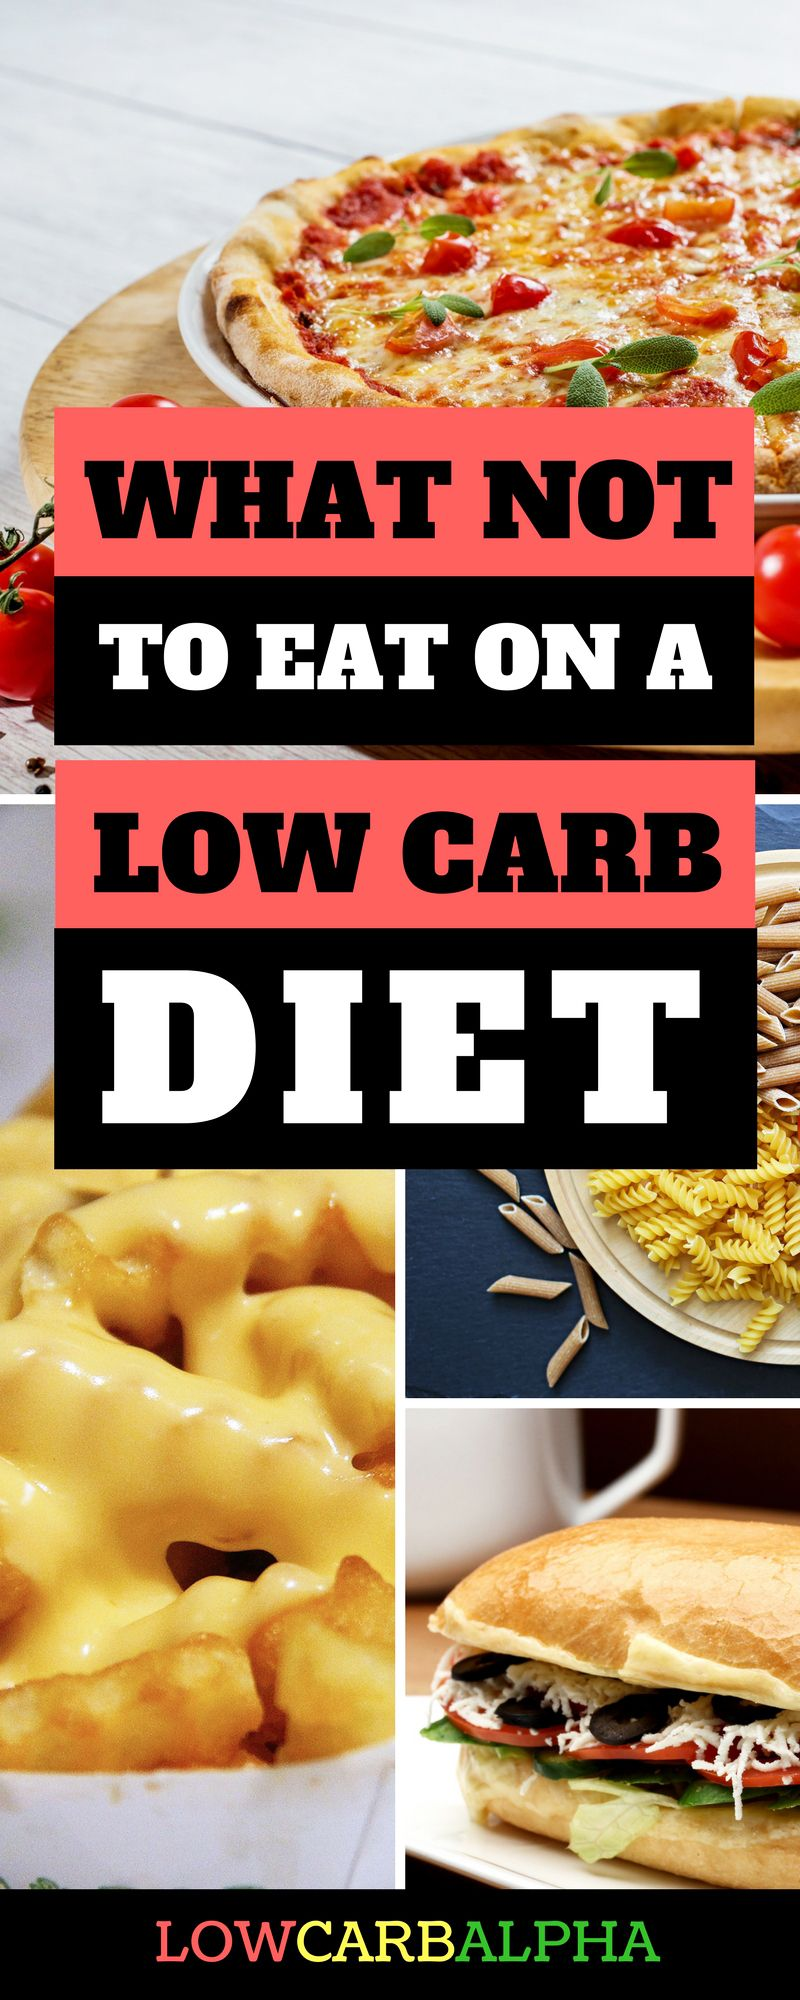 Foods to Avoid on a Low Carb Diet | No carb diets, Diet ...